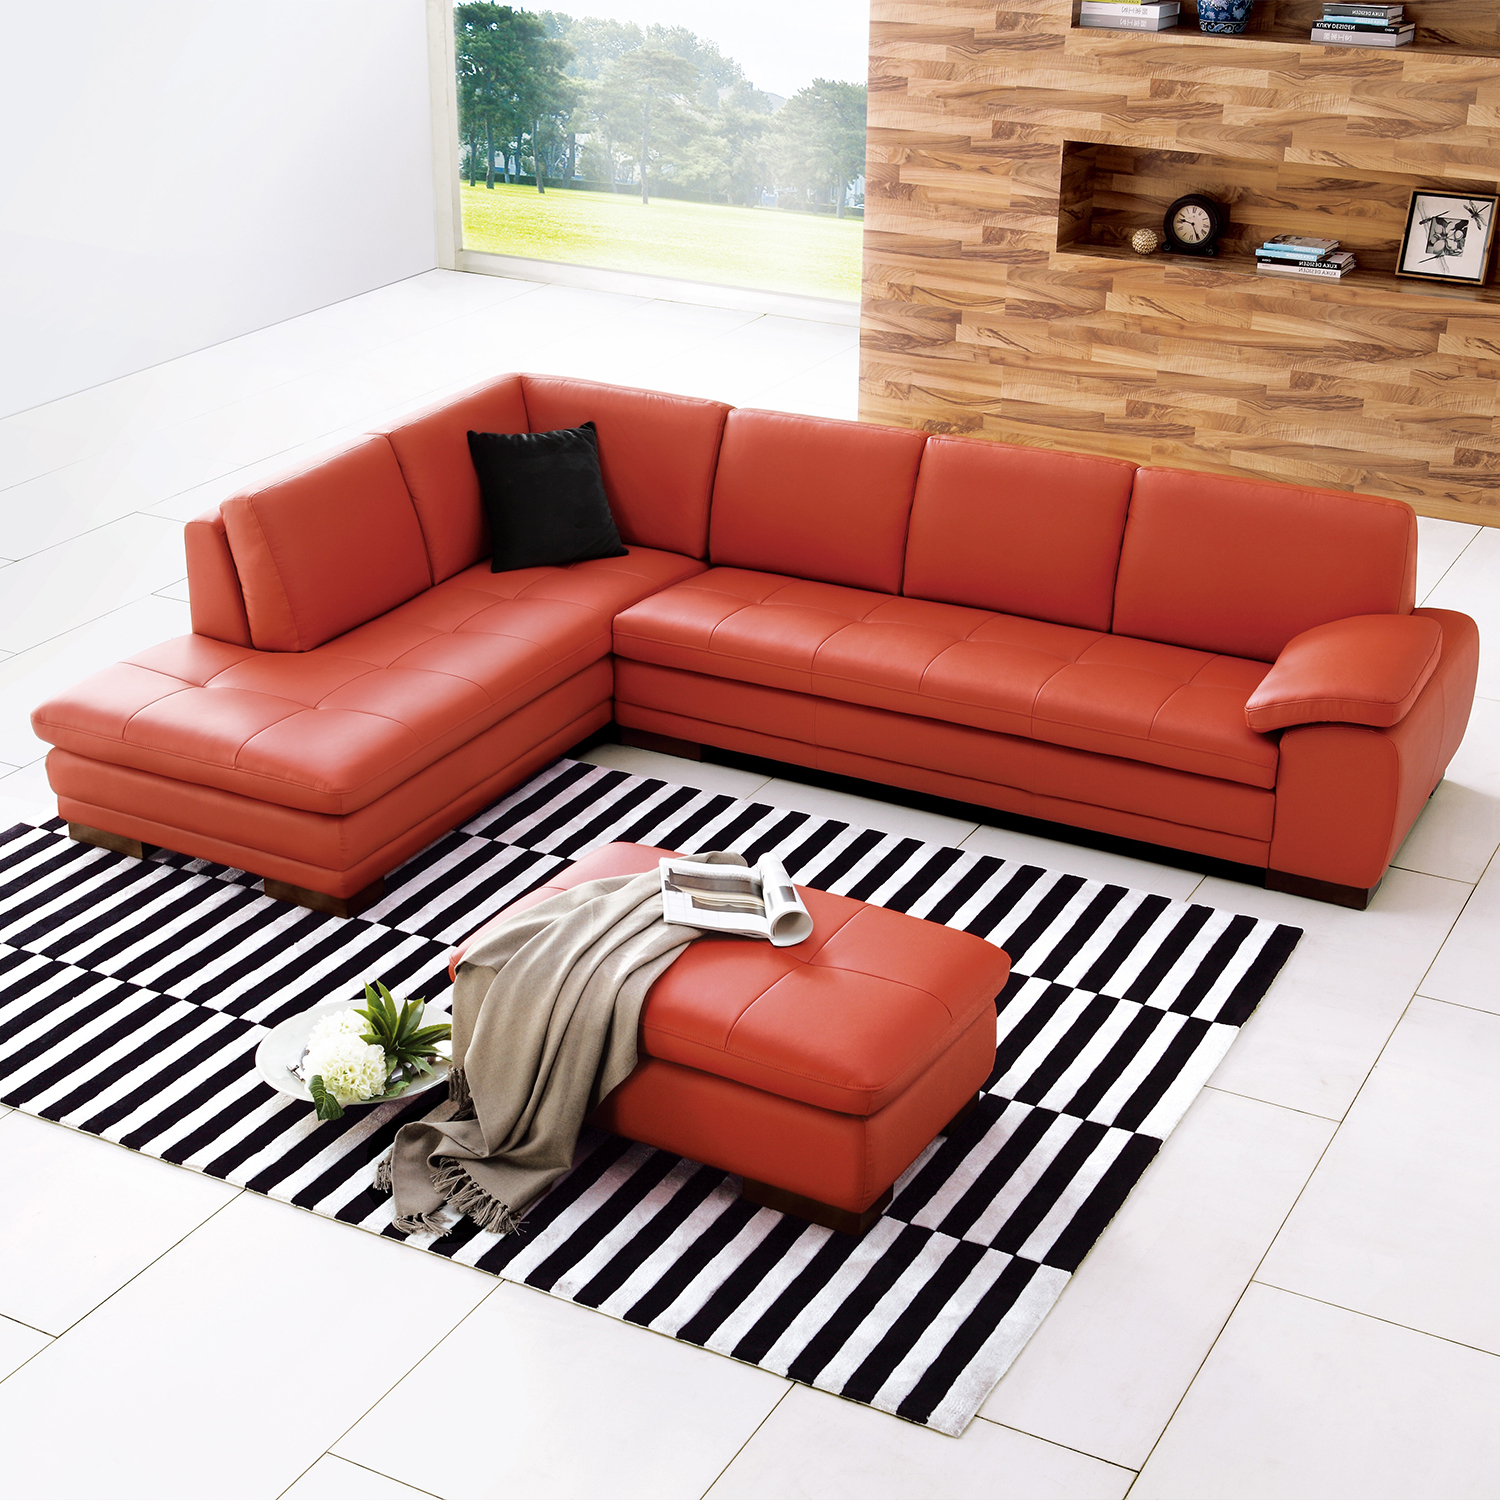 jm furniture 175443111 lhfc pk capri 625 italian leather sectional pumpkin w left facing chaise